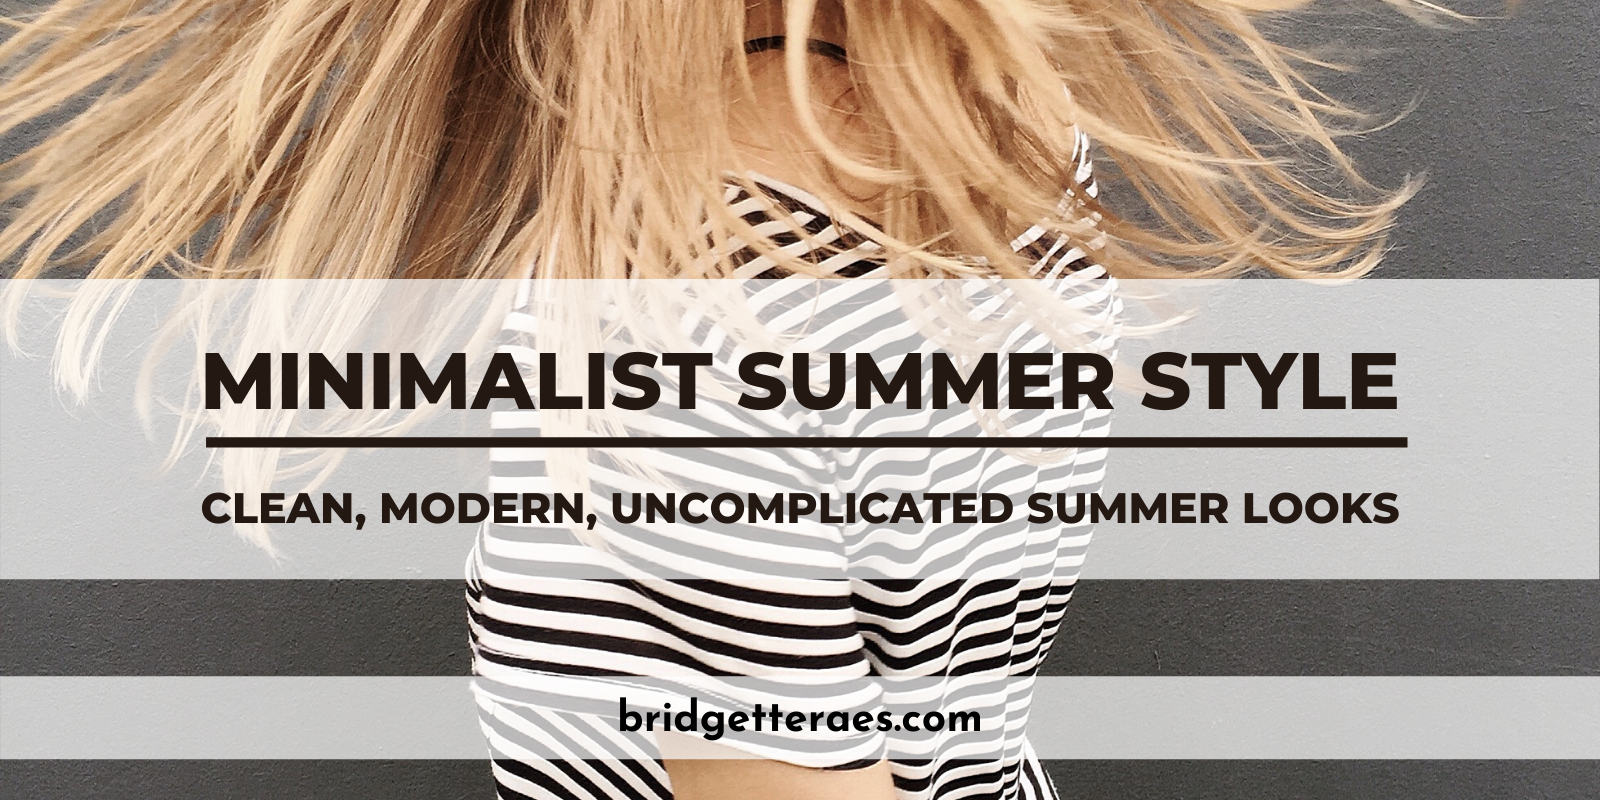 Minimalist Summer Style: Clean, Modern, Uncomplicated Summer Looks